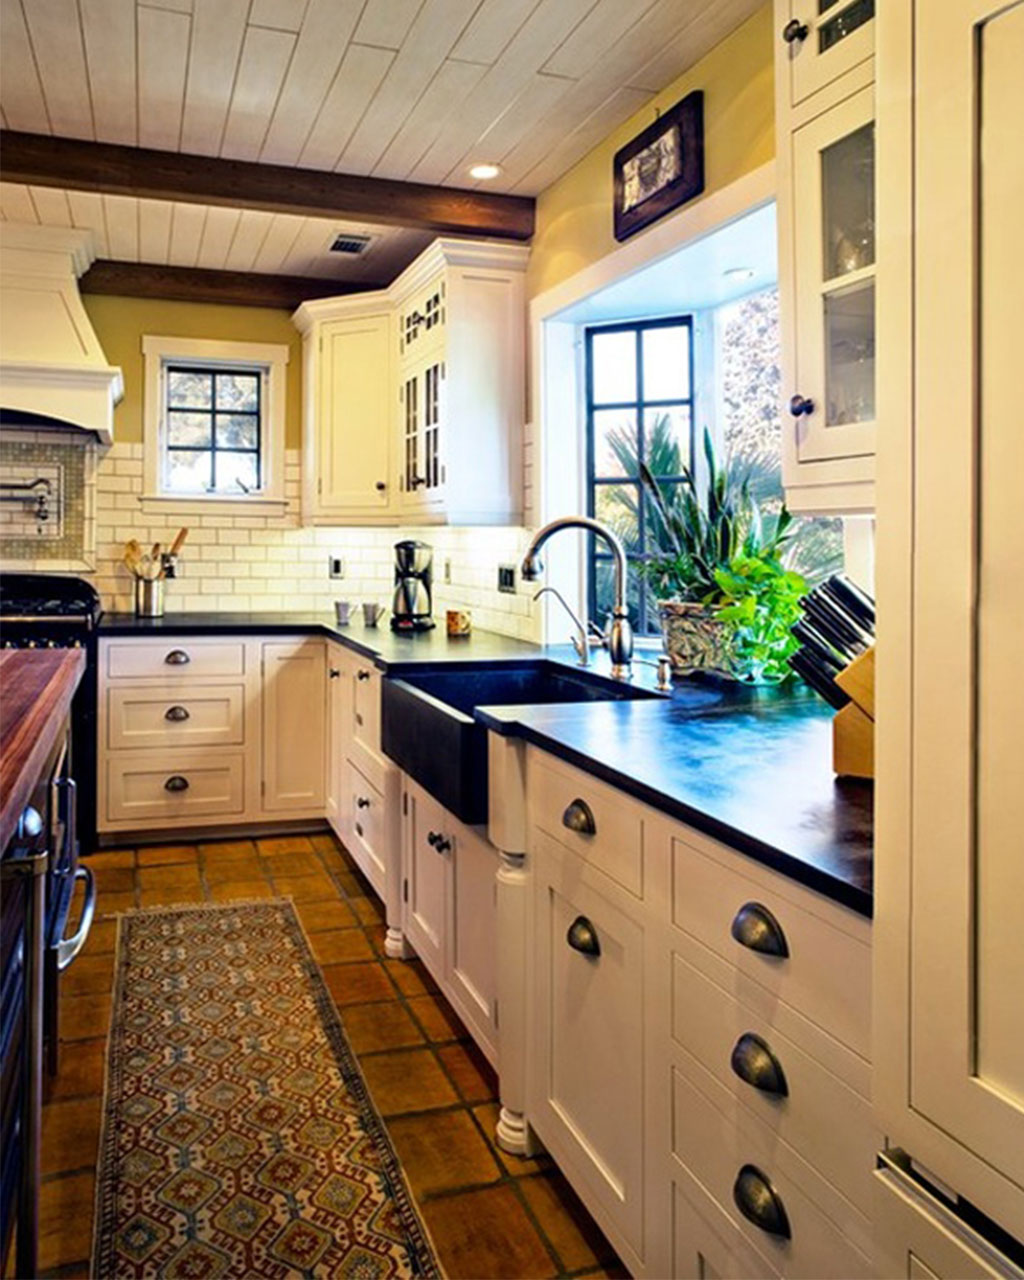 Kitchens 2014 Trends kitchen style trends 2014 photos kitchen 2014 kitchen appliance